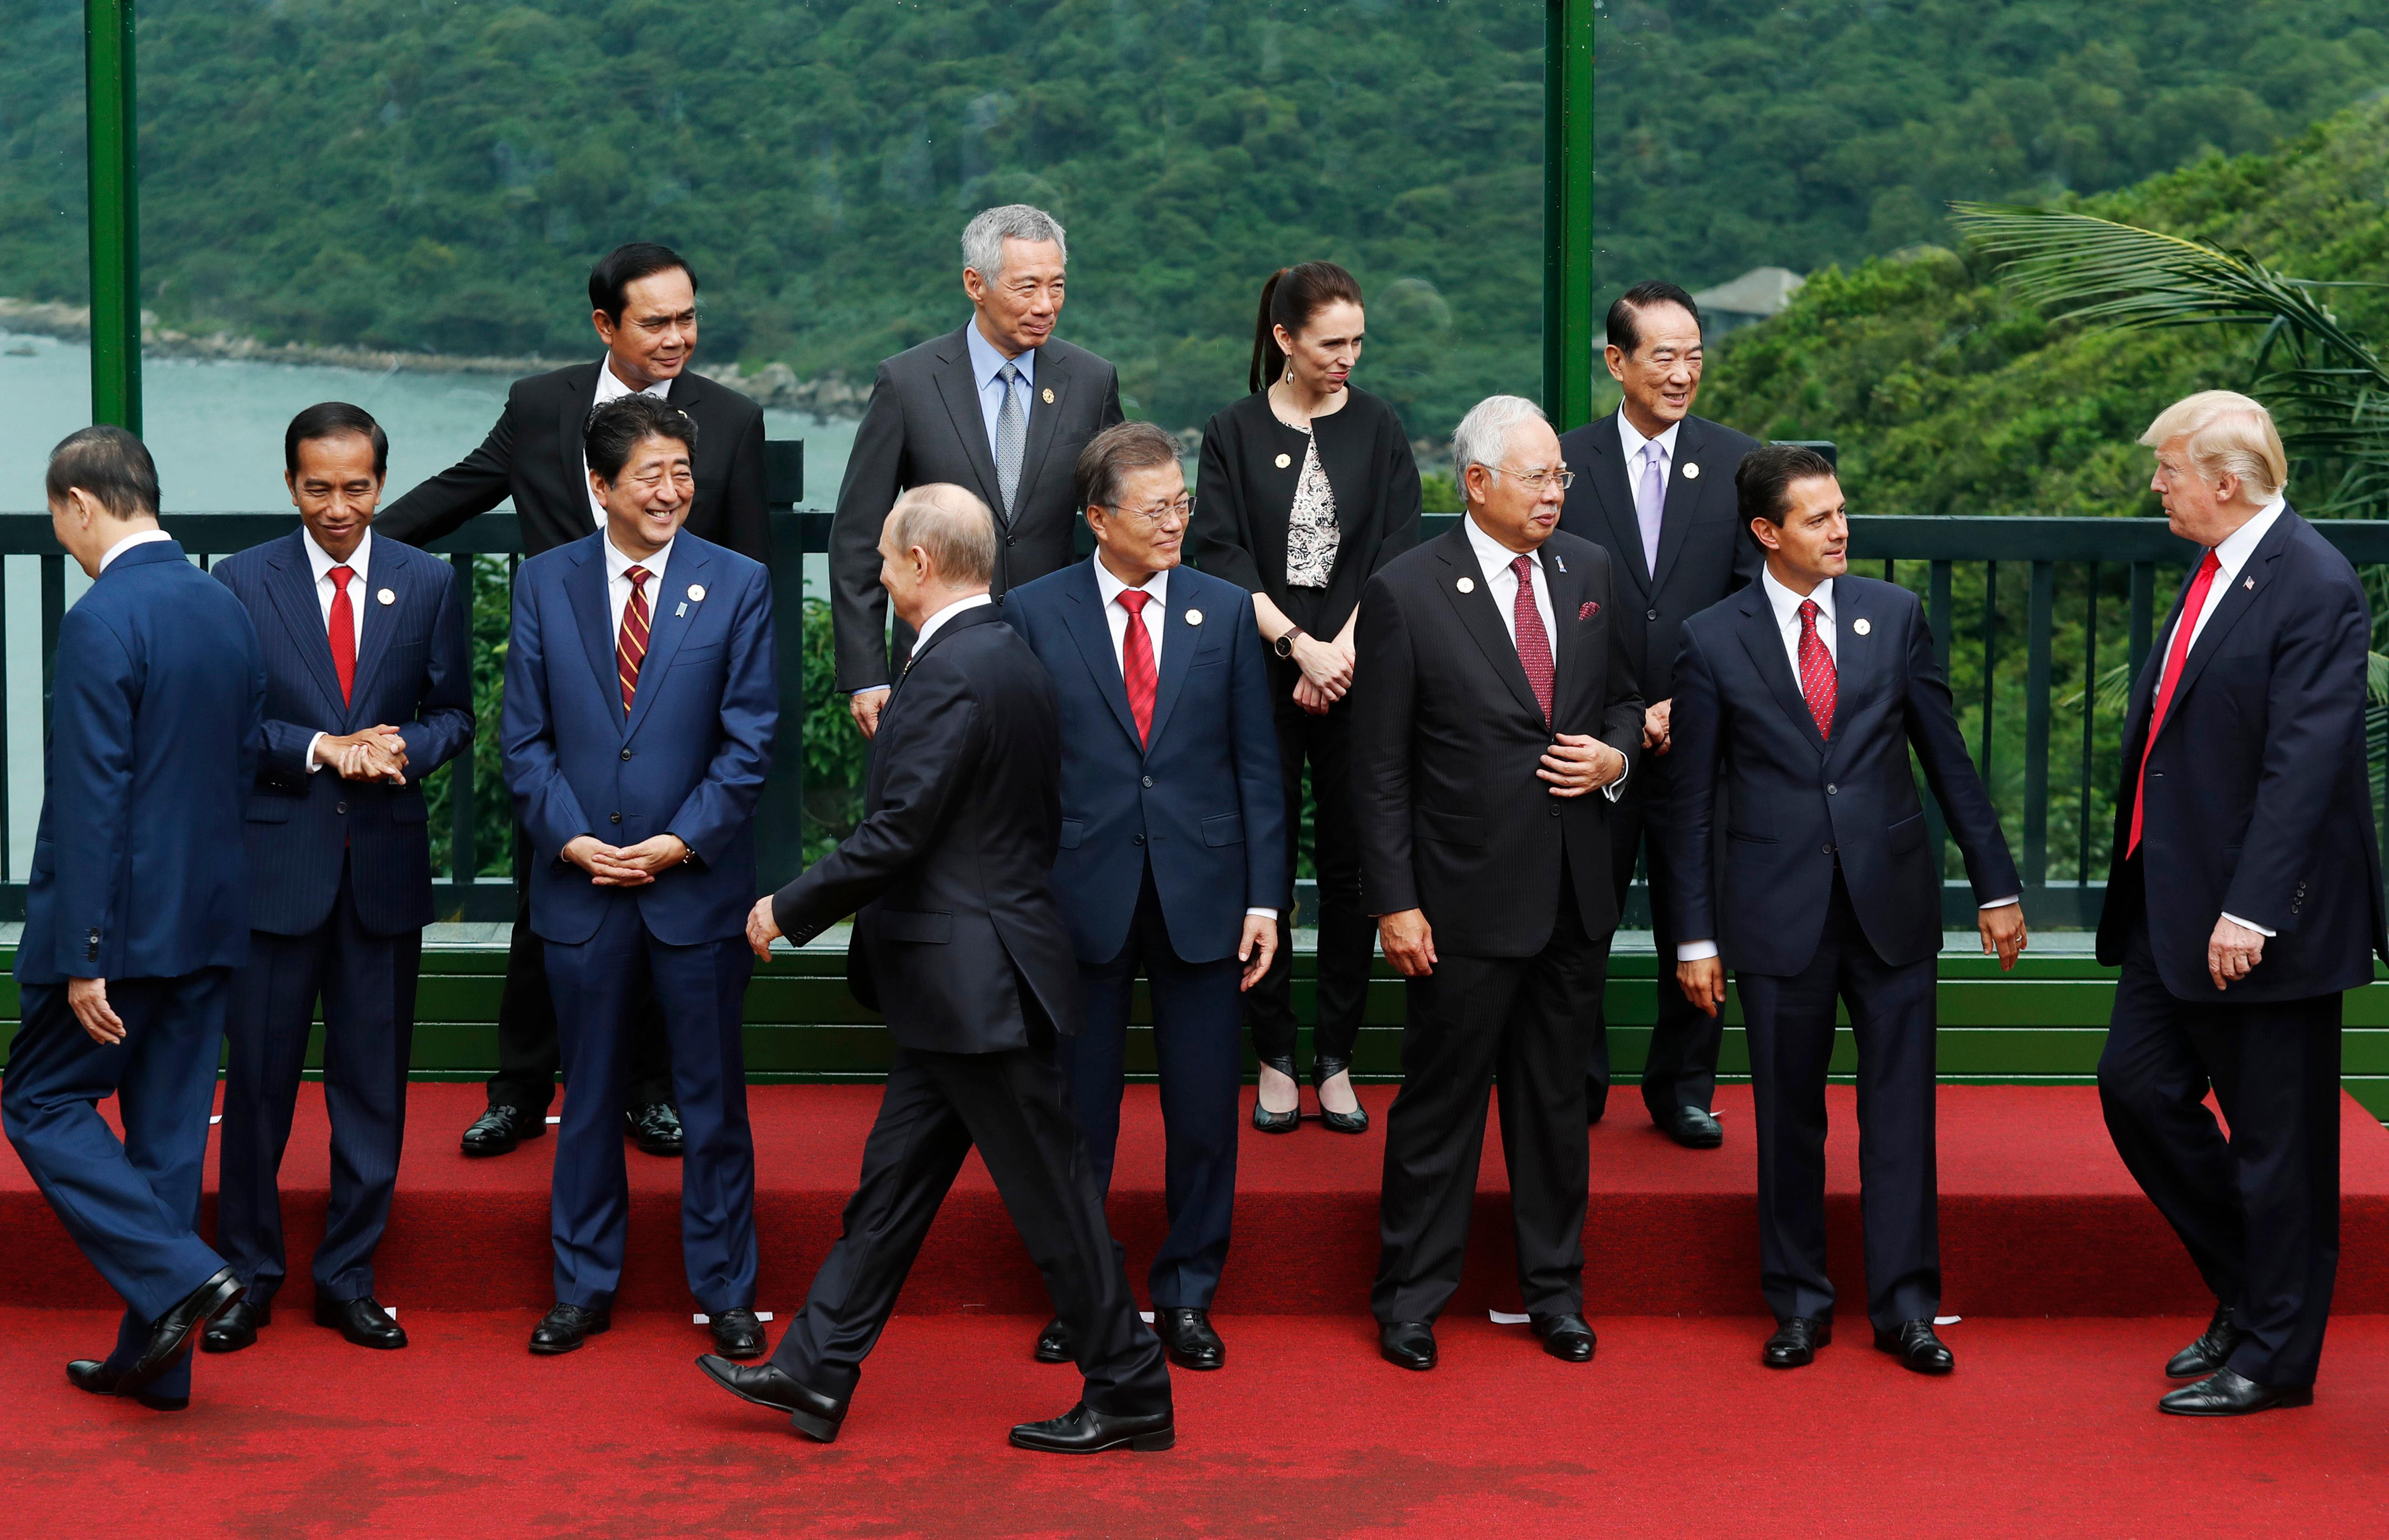 Leaders attend the family photo session at the APEC Summit in Danang, Vietnam, Saturday, Nov. 11, 2017. {&amp;nbsp;}(Jorge Silva/Pool Photo via AP)<p></p>